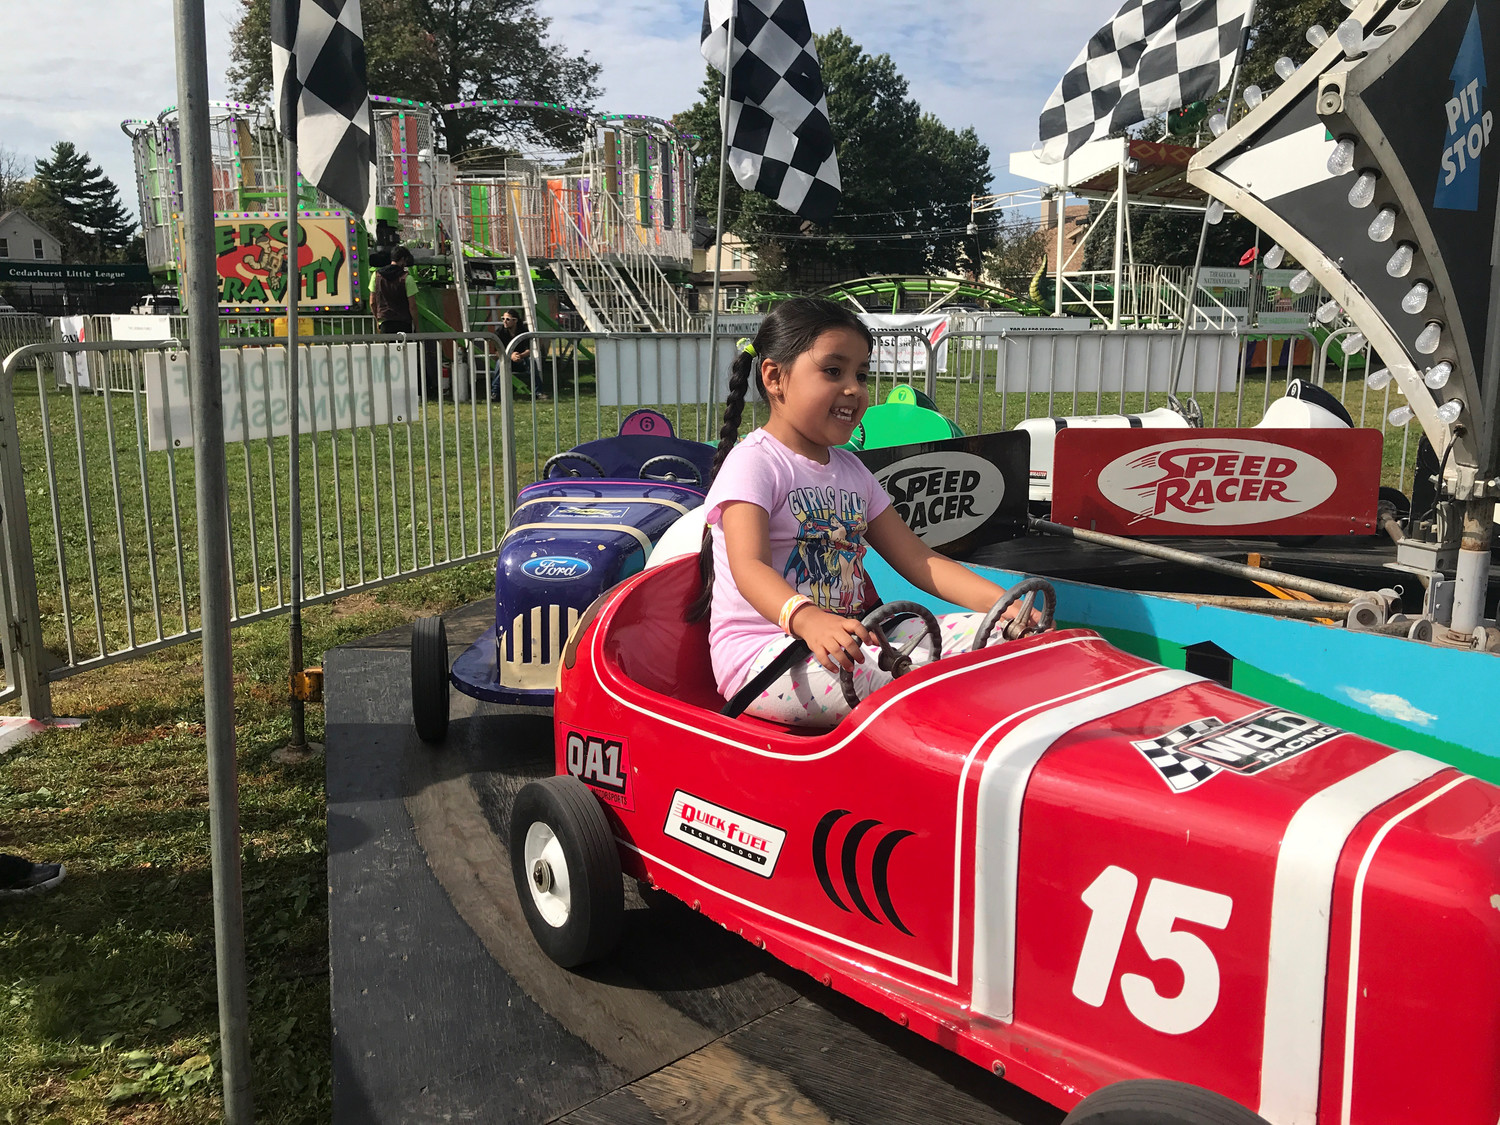 Danica Patrick has nothing on Shanty Vasquez, 6, as she made like Speed Racer on the car ride at the fair on Oct. 7.